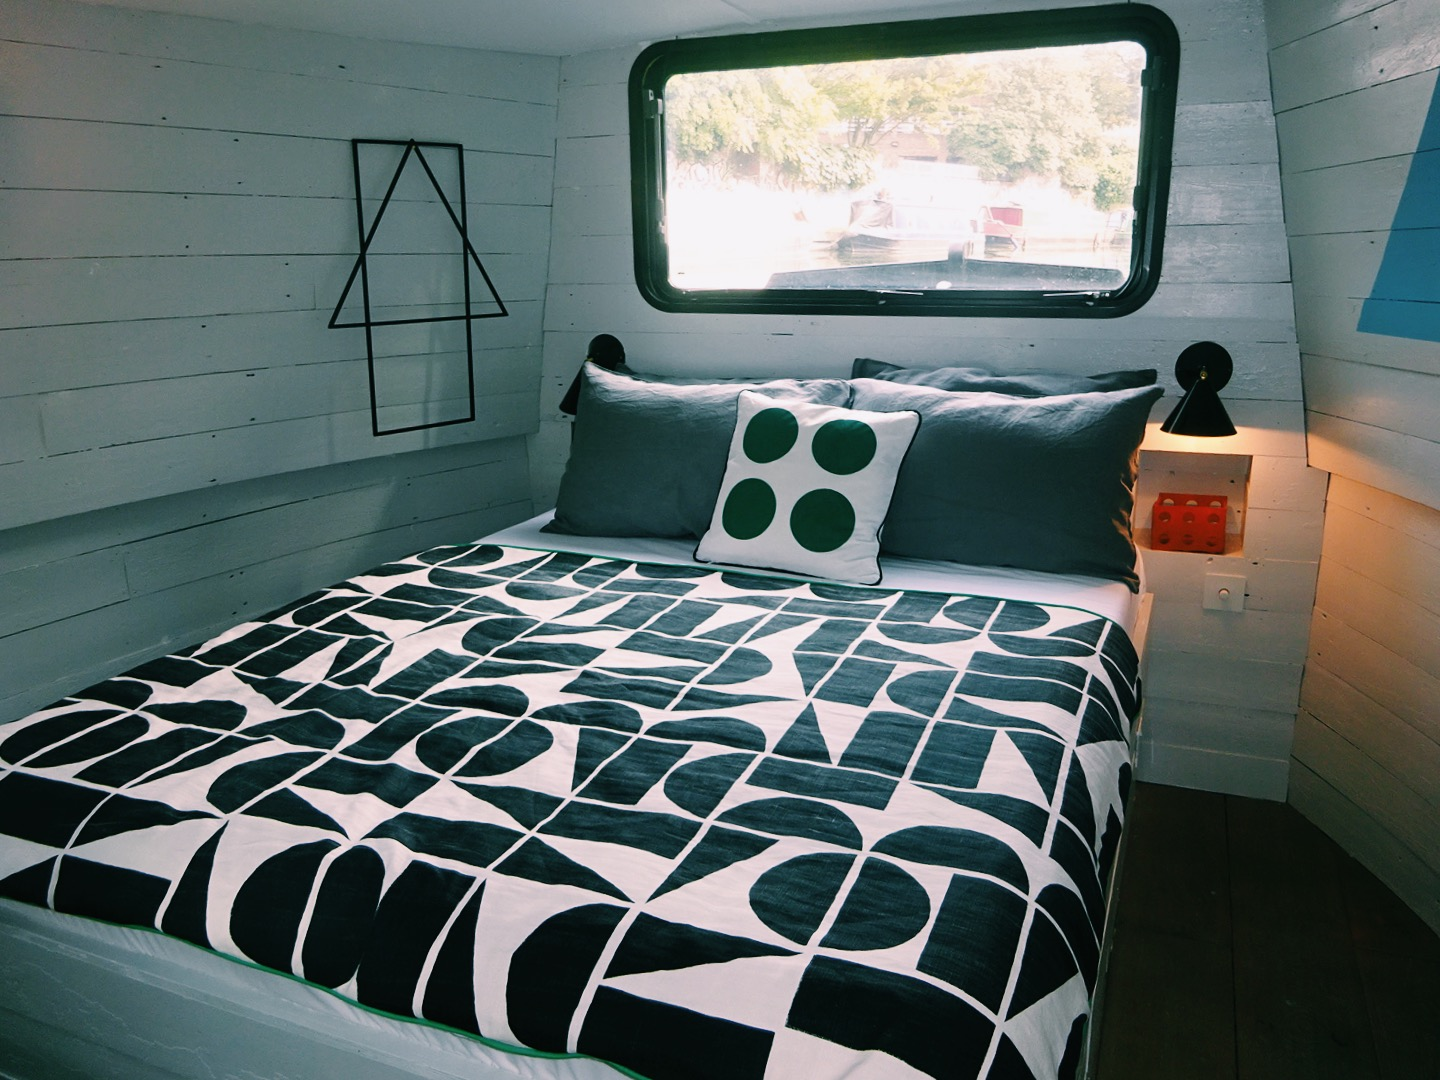 Stunning bedding featuring the new design